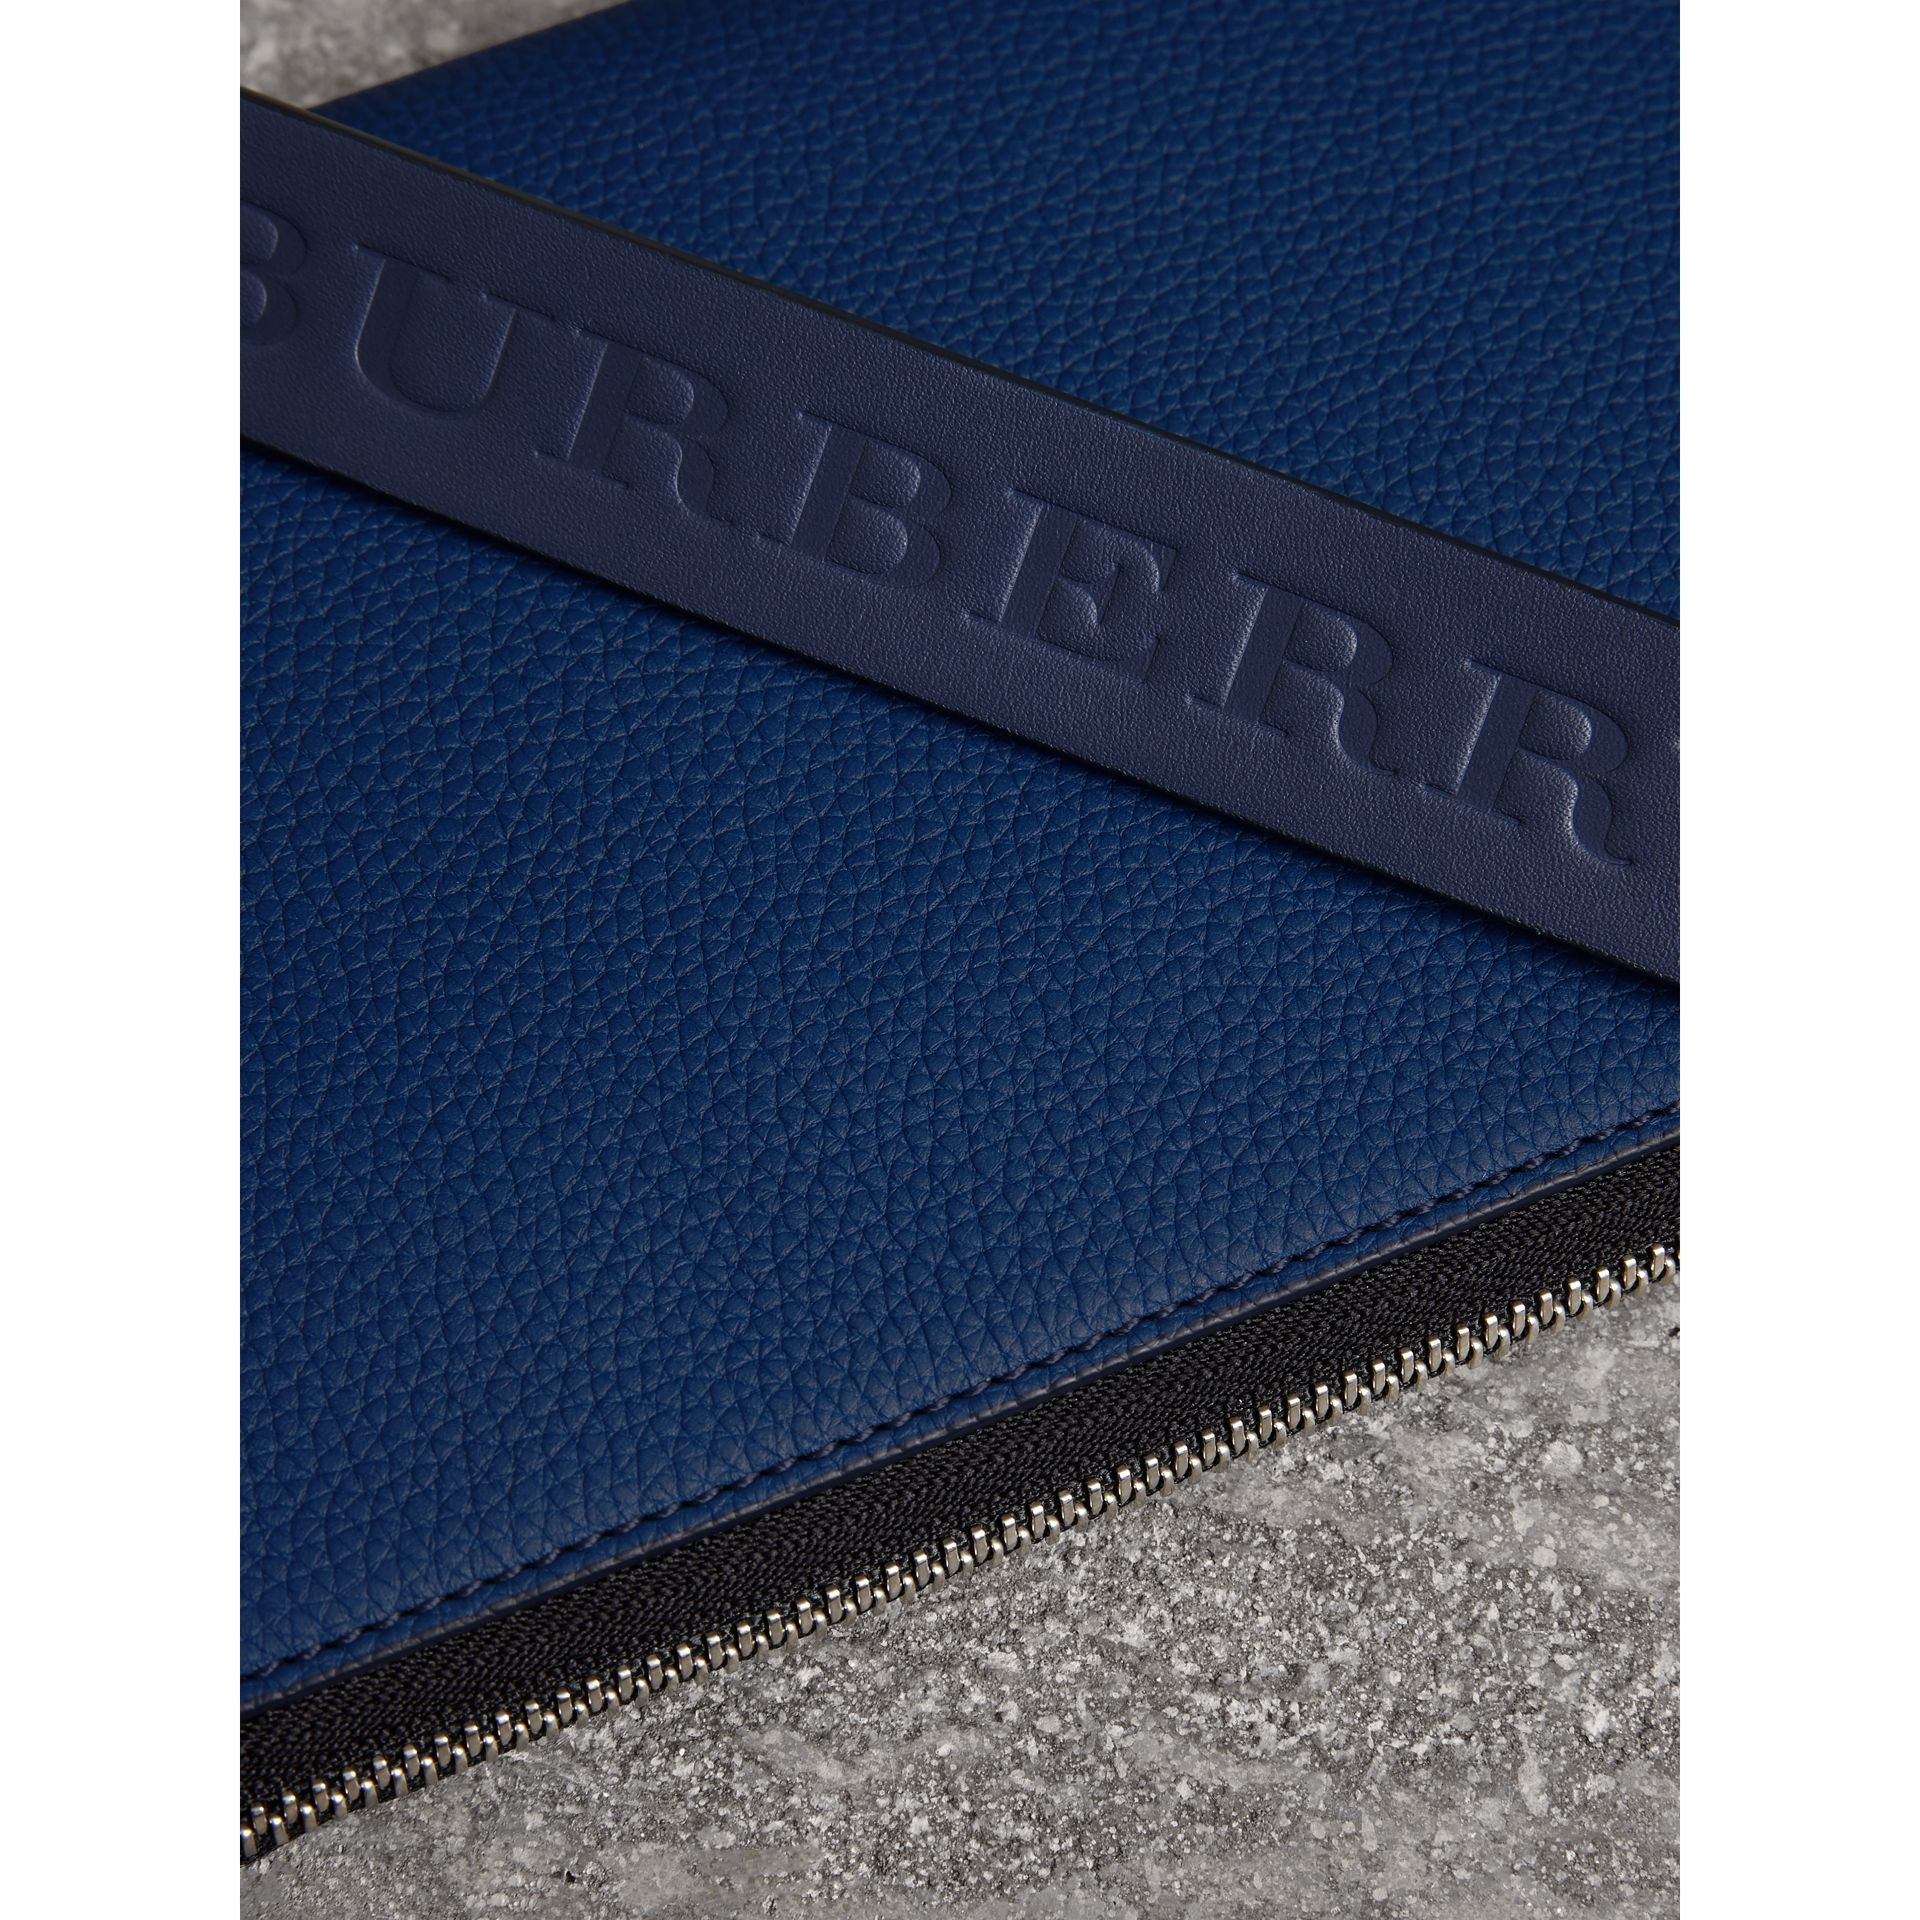 Two-tone Grainy Leather Travel Wallet in Bright Ultramarine - Men | Burberry - gallery image 1